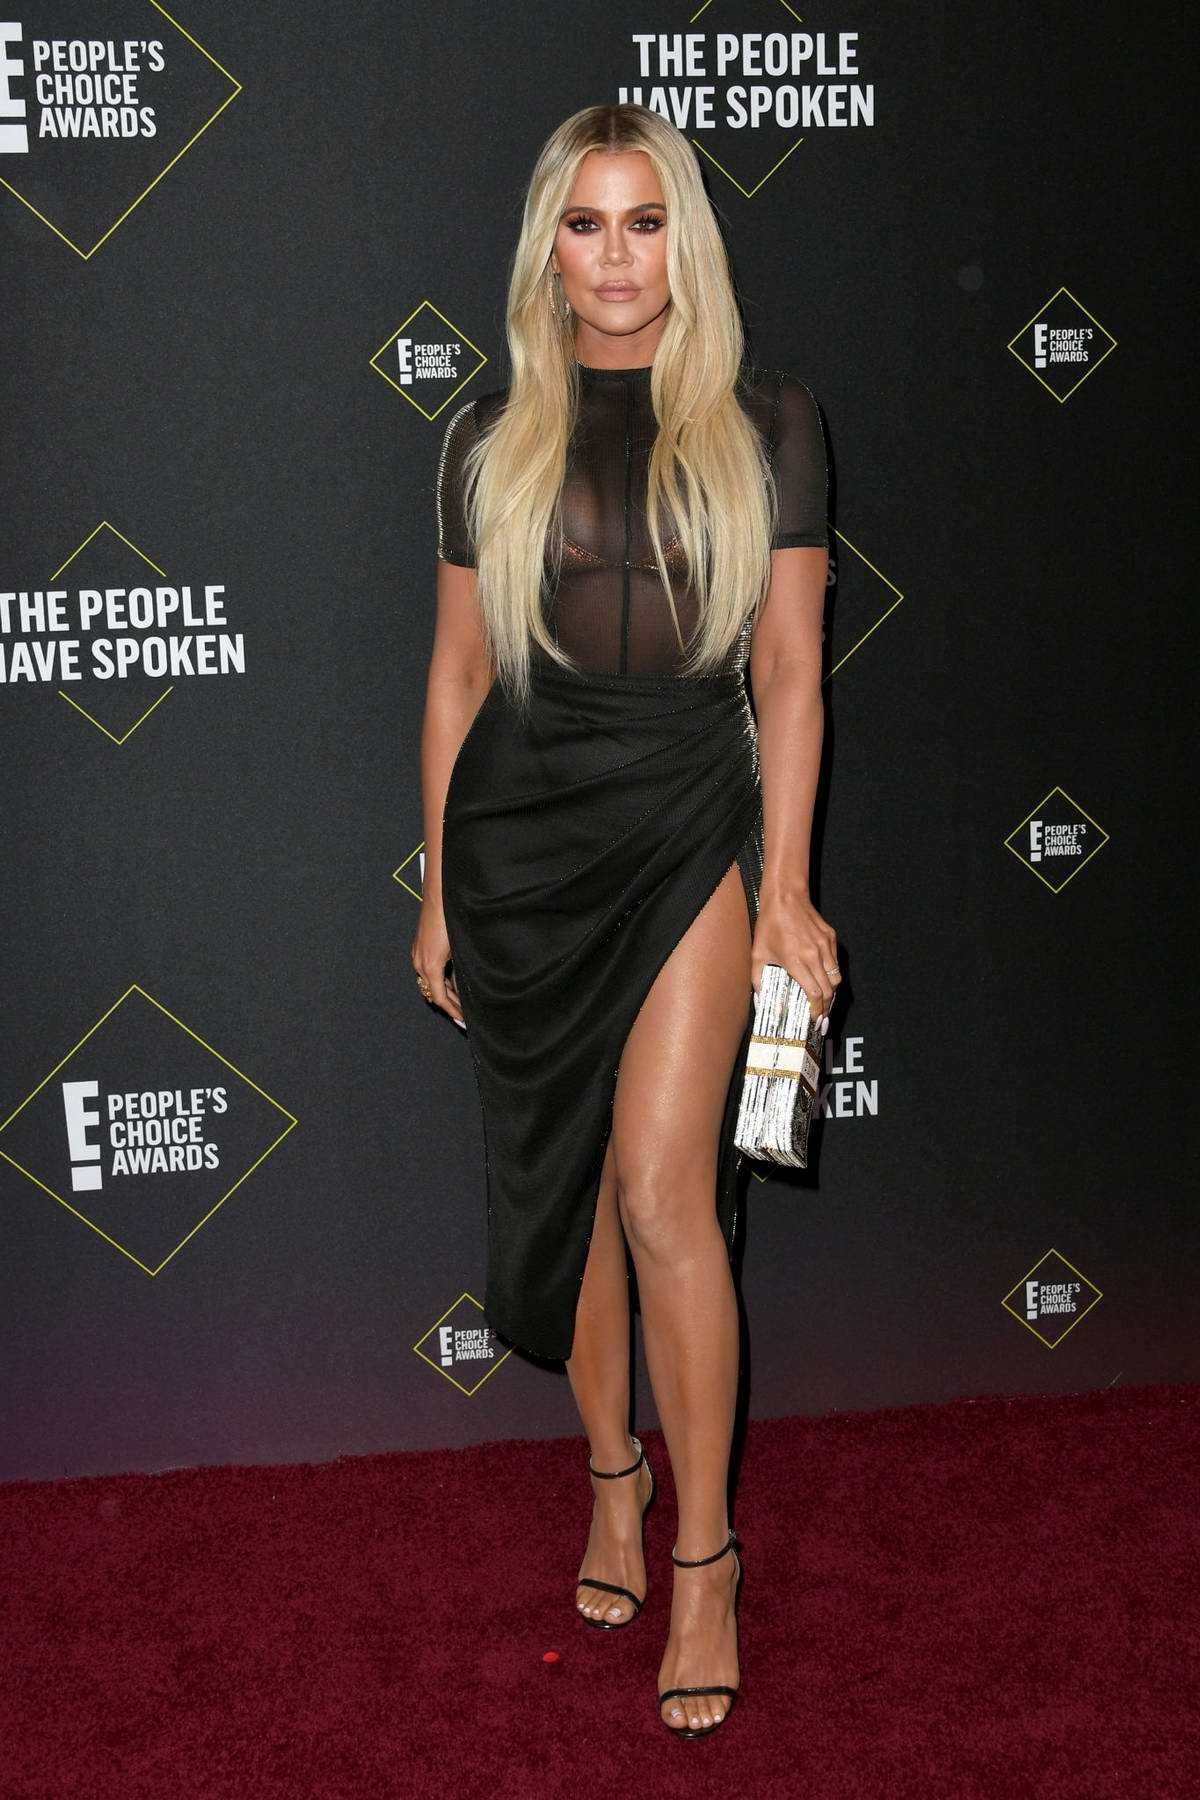 Khloe Kardashian attends the 2019 E! People's Choice Awards held at the Barker Hangar in Santa Monica, California